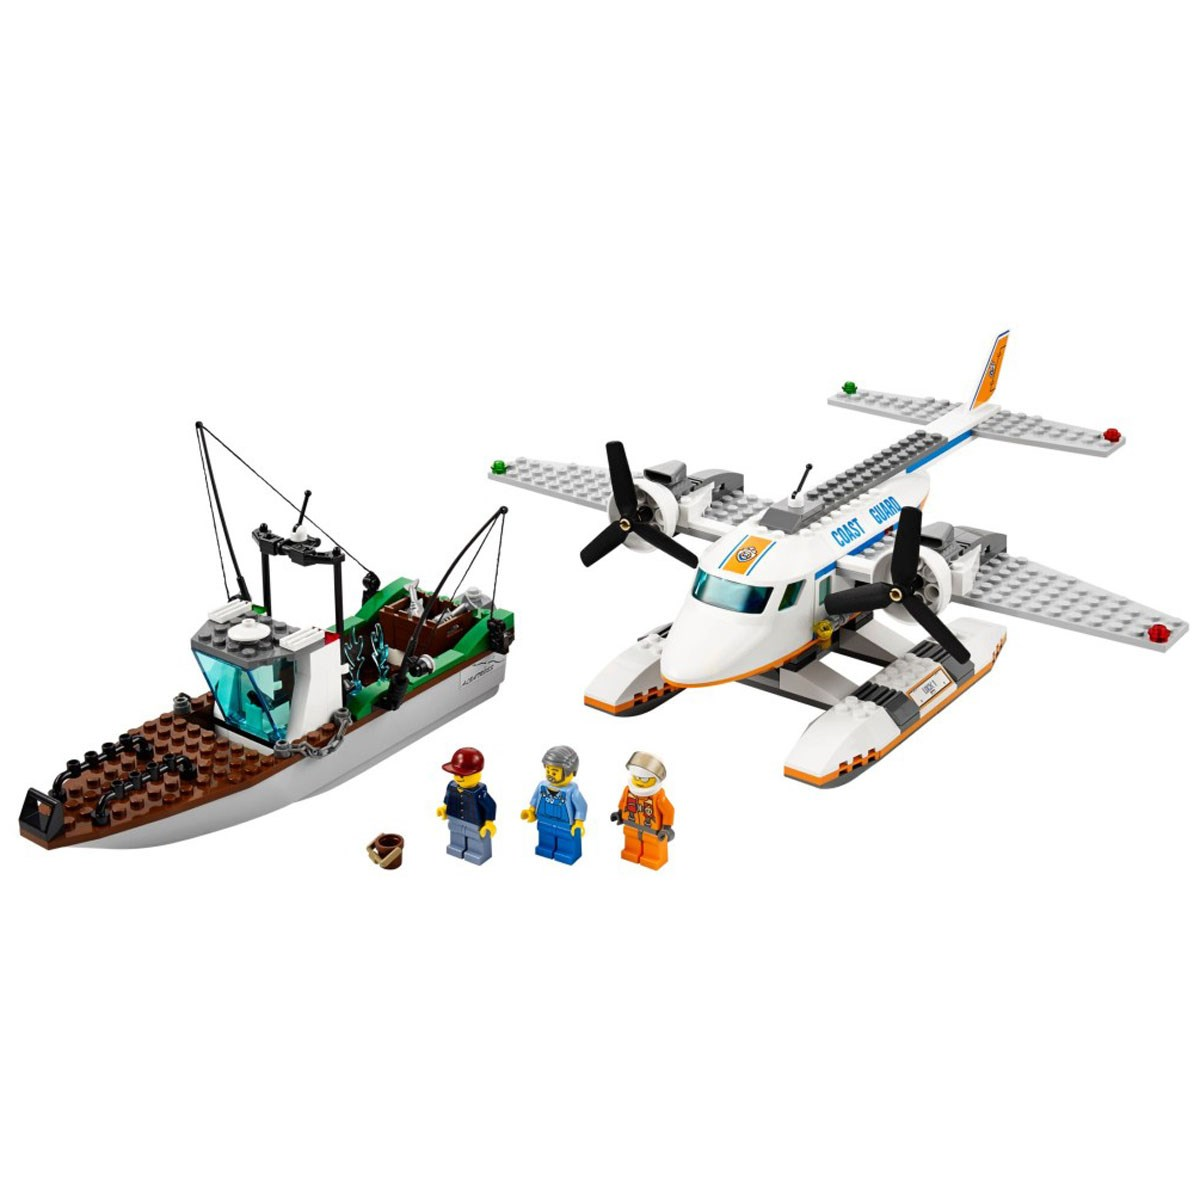 Do choi LEGO 60015 - Xep hinh may bay cuu ho